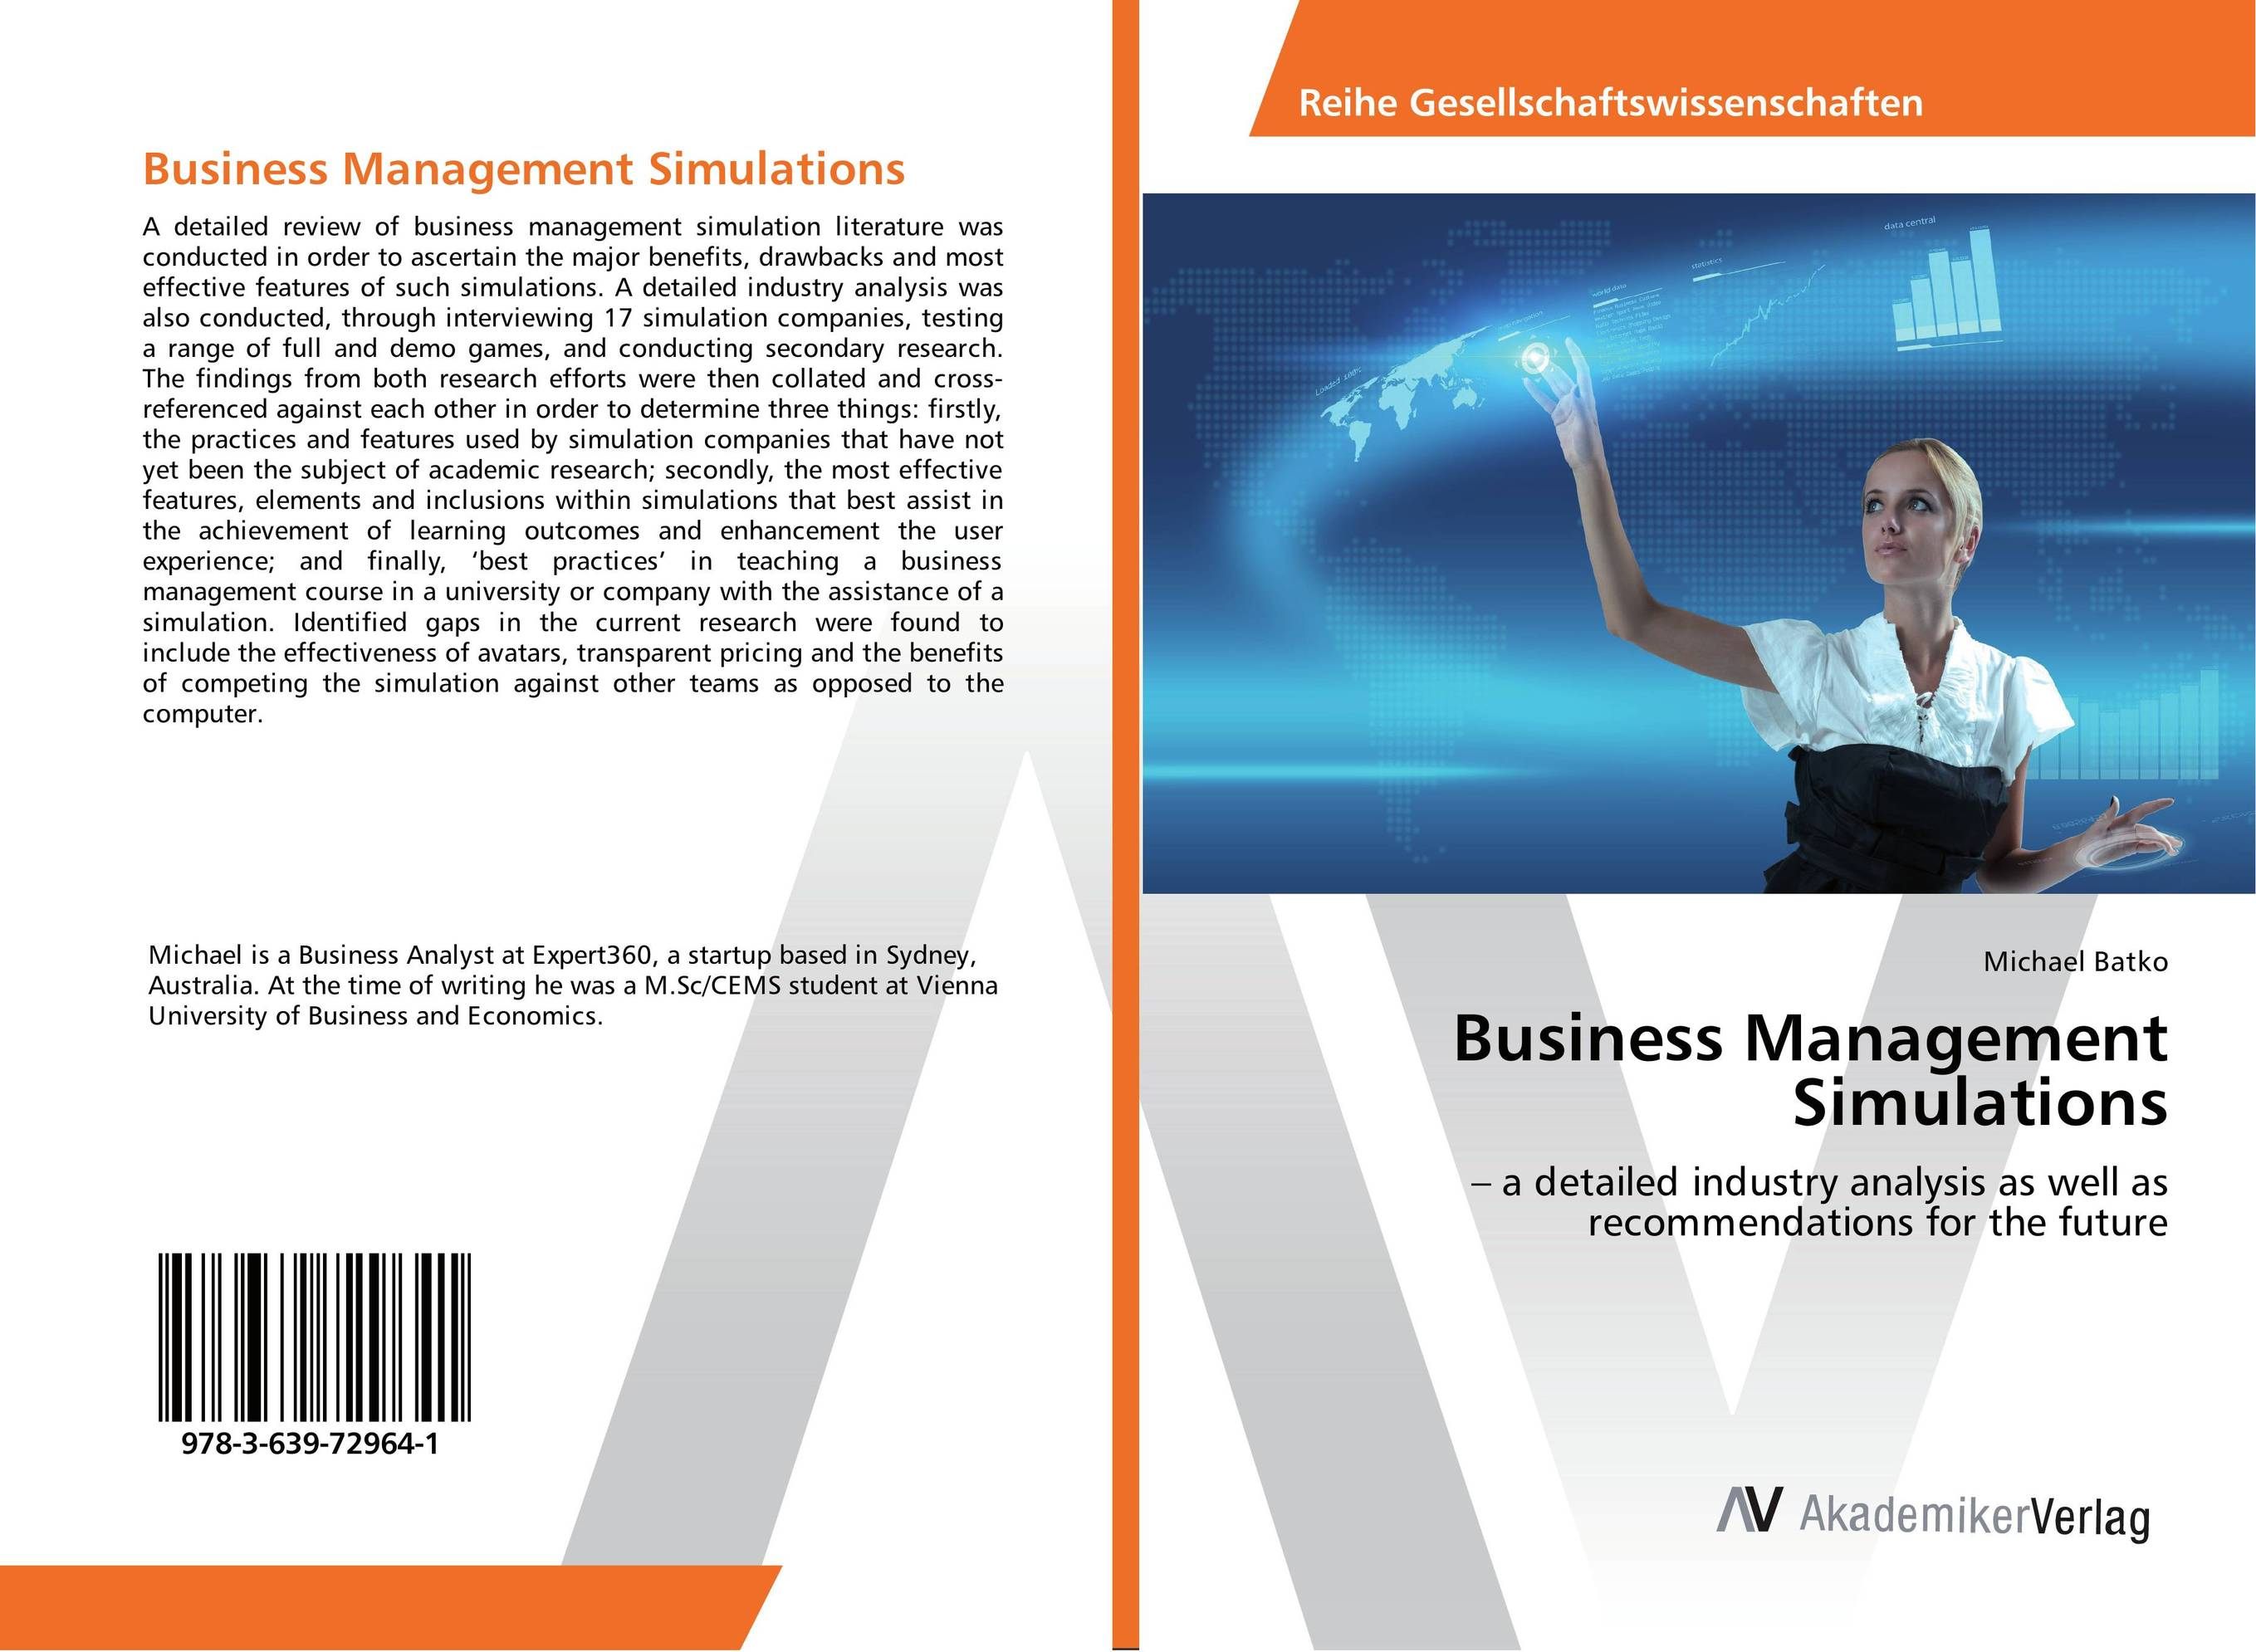 Business Management Simulations belousov a security features of banknotes and other documents methods of authentication manual денежные билеты бланки ценных бумаг и документов